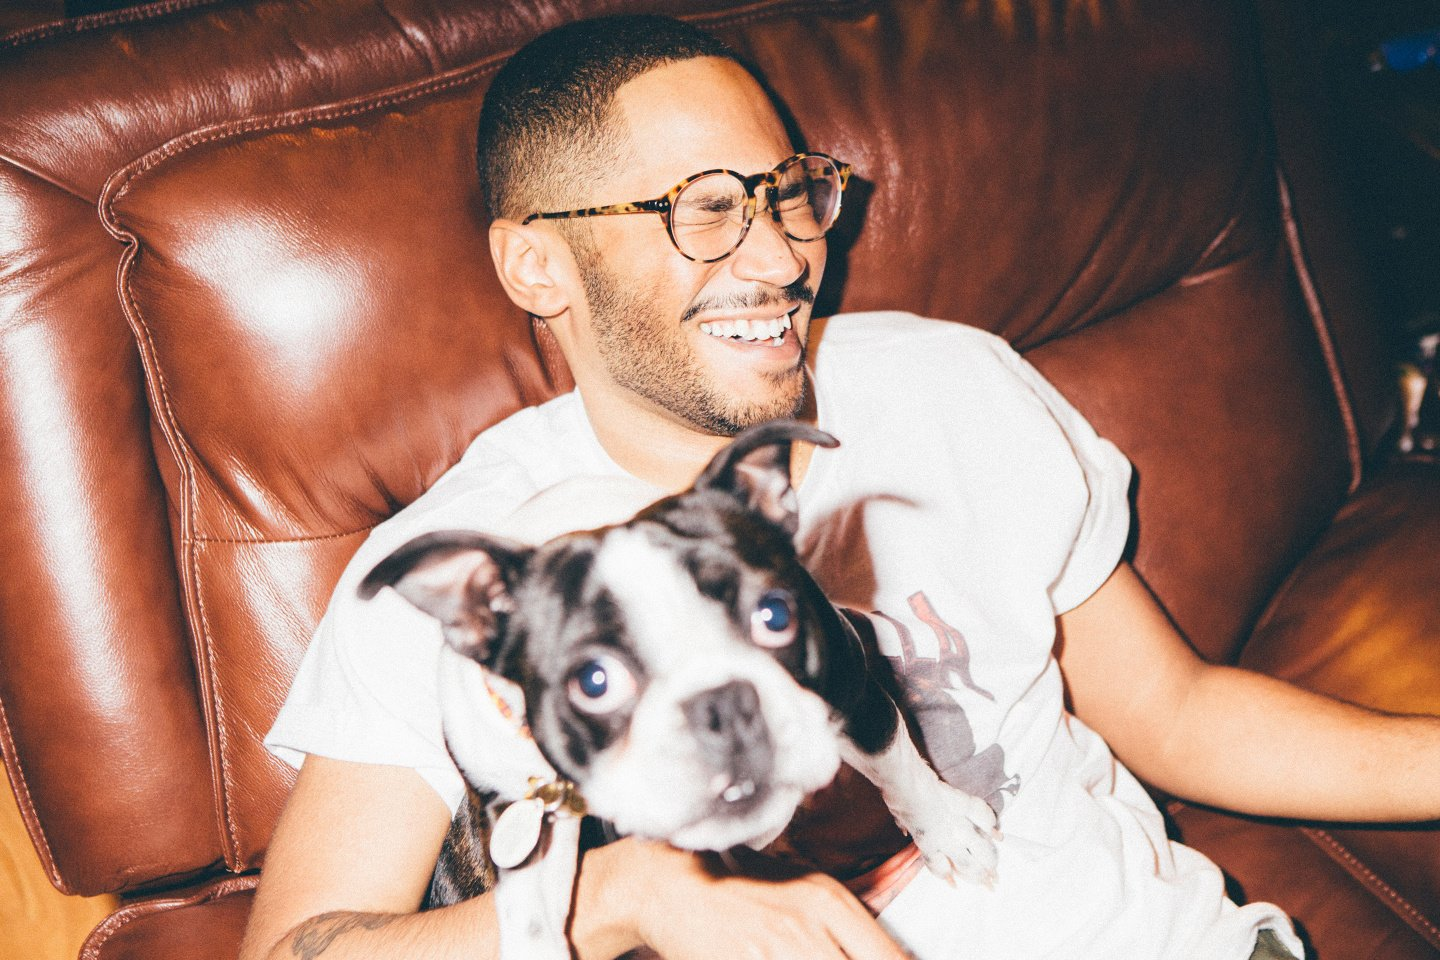 .@KAYTRANADA has delivered four new songs, including Sade and A Tribe Called Quest remixes. https://t.co/Ywk2lNtuCX https://t.co/C0cbGRy2VT